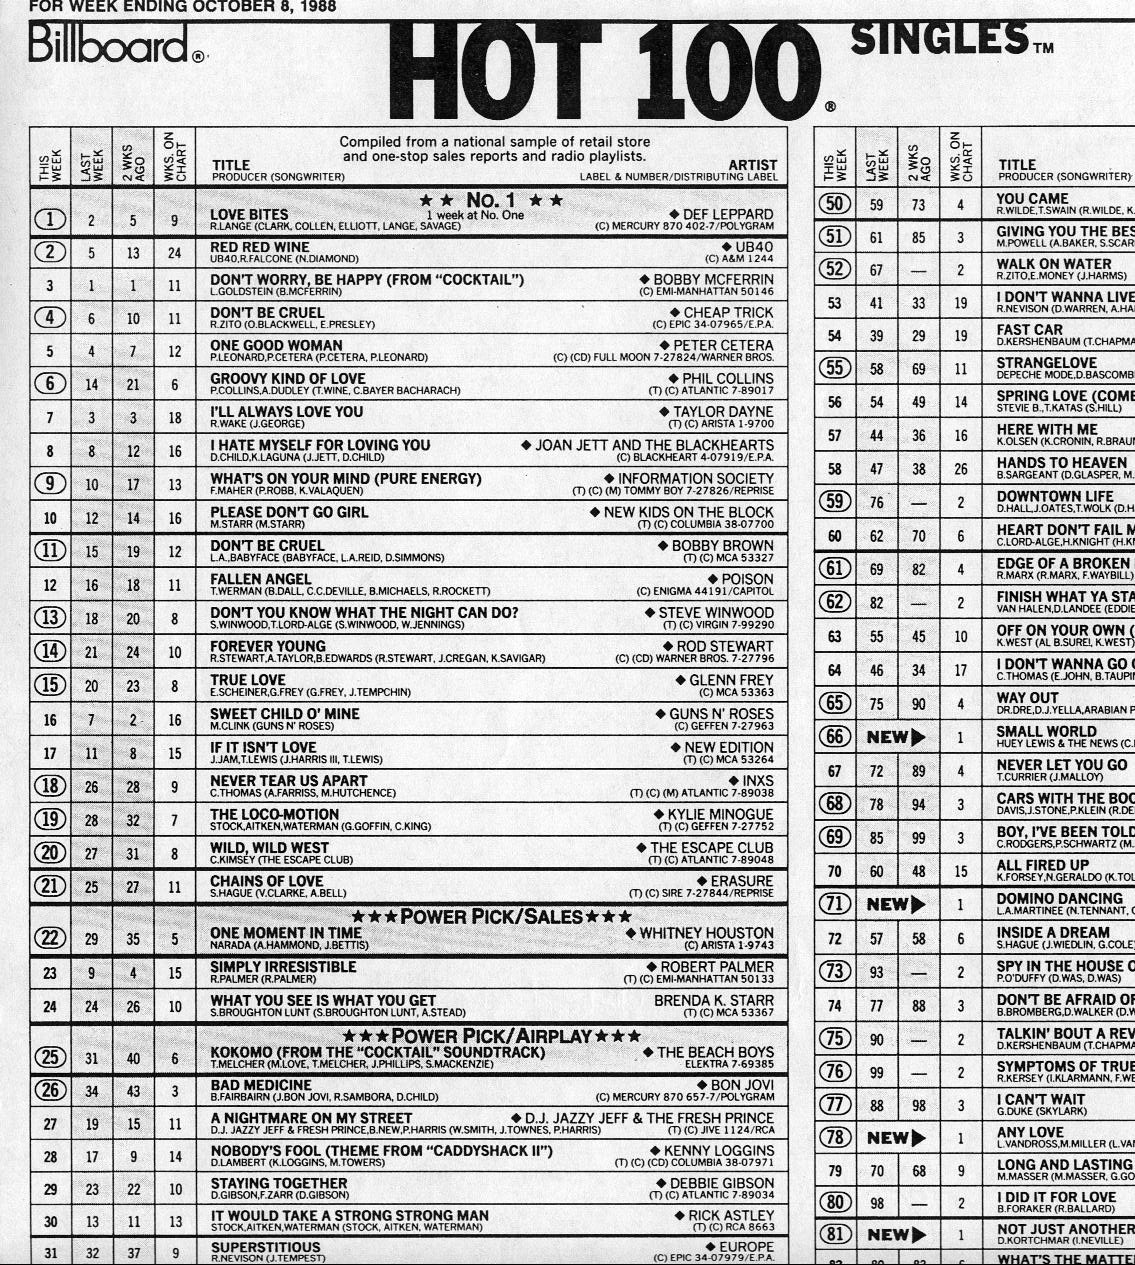 Hot 100 Billboard Charts: Updates | Weekly Top 40rh:weeklytop40.wordpress.com,Chart